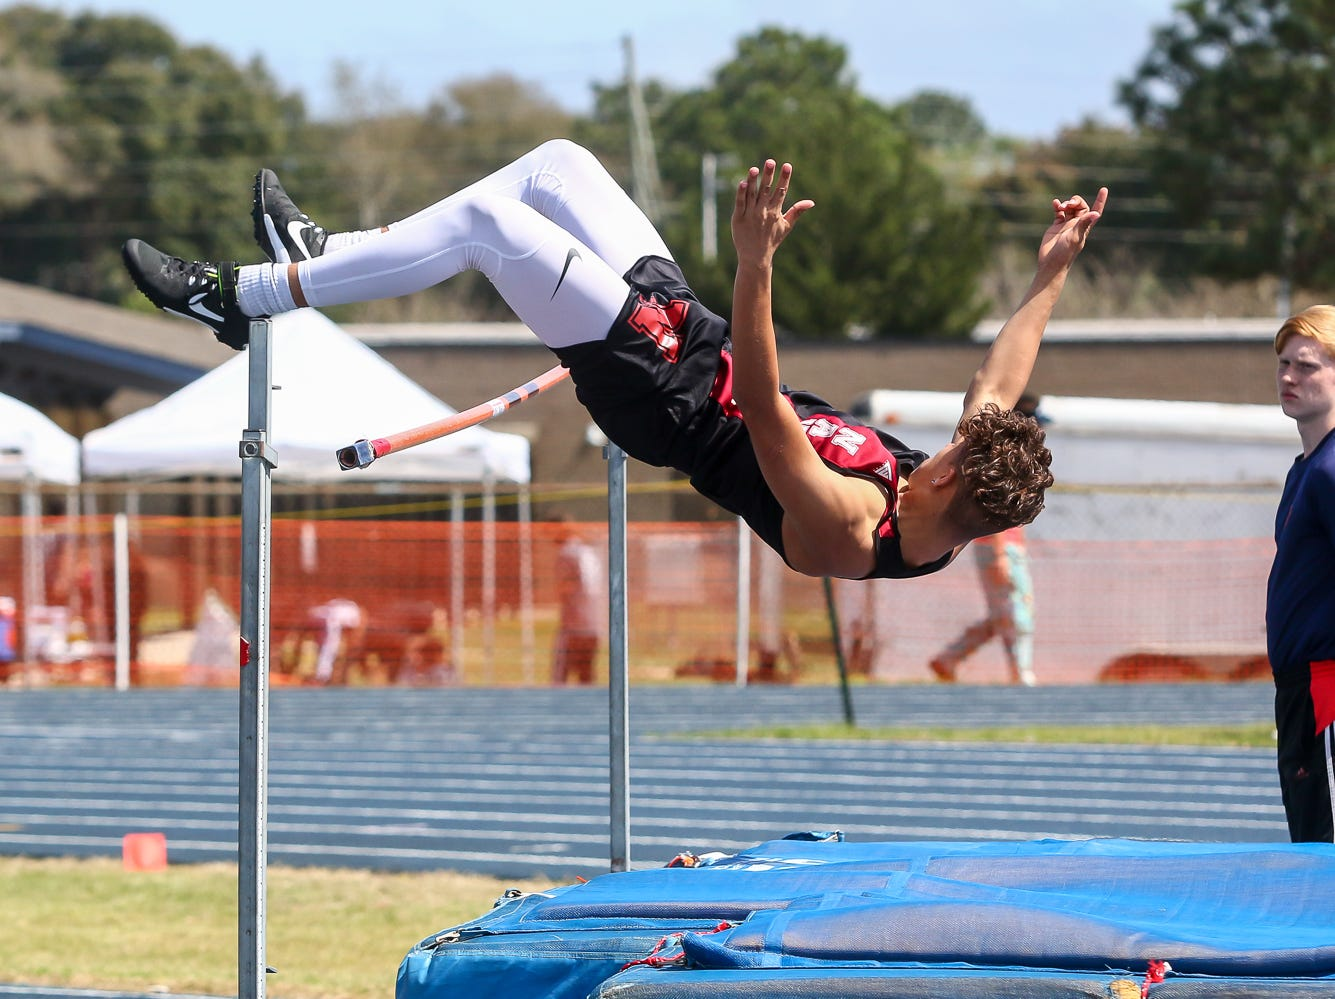 Navarre's Caden Howard competes in the high jump on Saturday, March 9, 2019, during the Aggie Invitational at Washington High School.